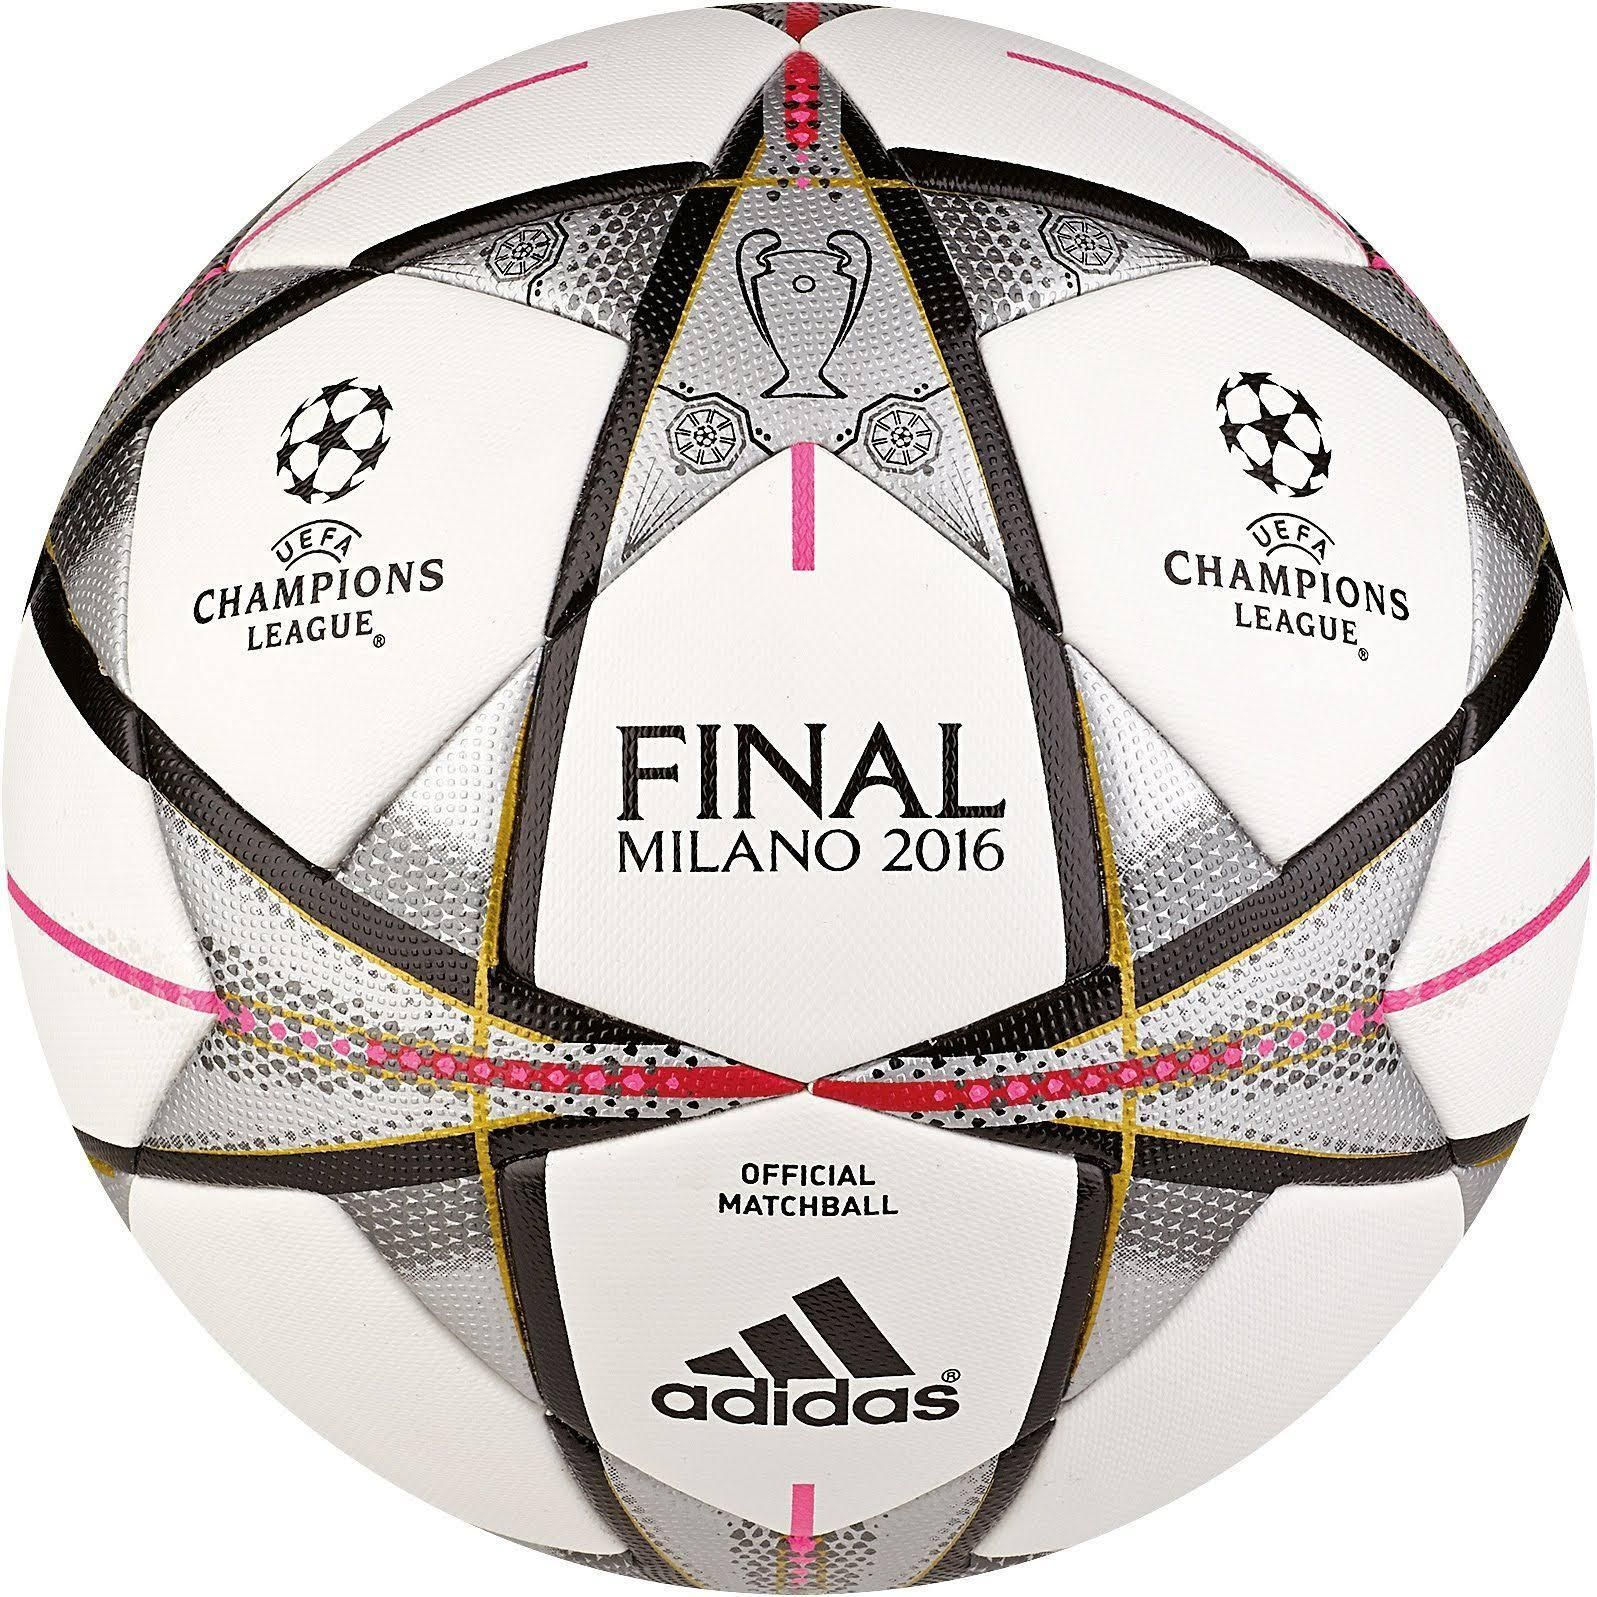 adidas Fußball Finale Milano 2016 Champions League Official